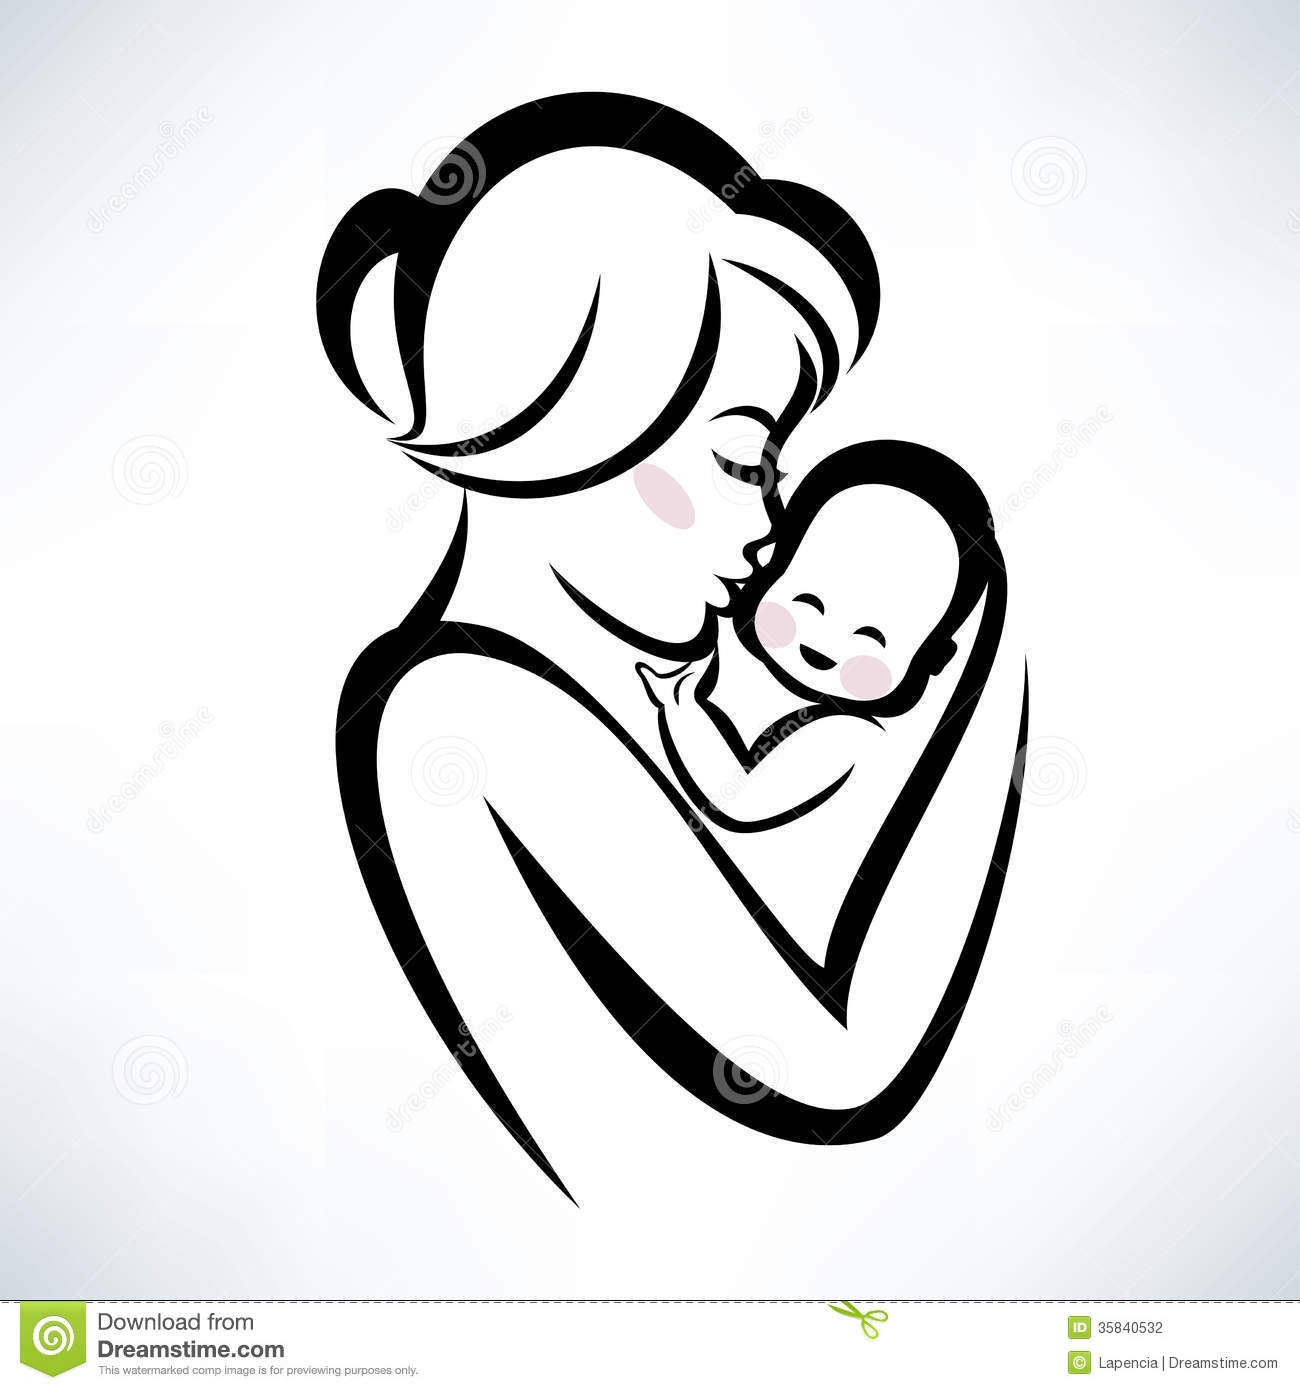 Mother rushing around with baby clipart.